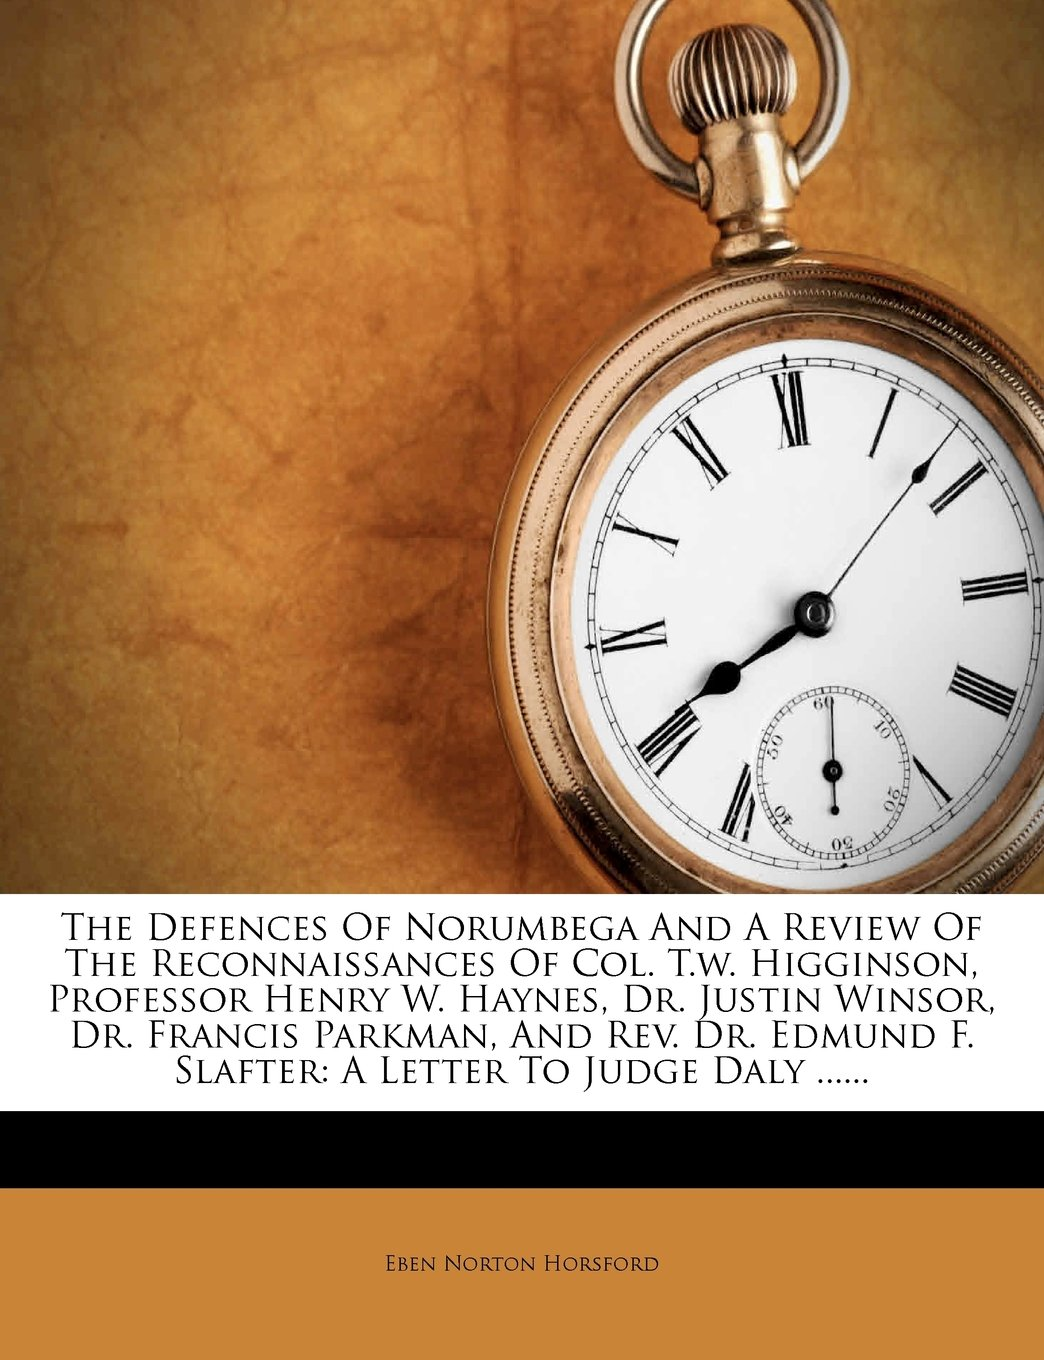 The Defences Of Norumbega And A Review Of The Reconnaissances Of Col. T.w. Higginson, Professor Henry W. Haynes, Dr. Justin Winsor, Dr. Francis ... F. Slafter: A Letter To Judge Daly ...... PDF